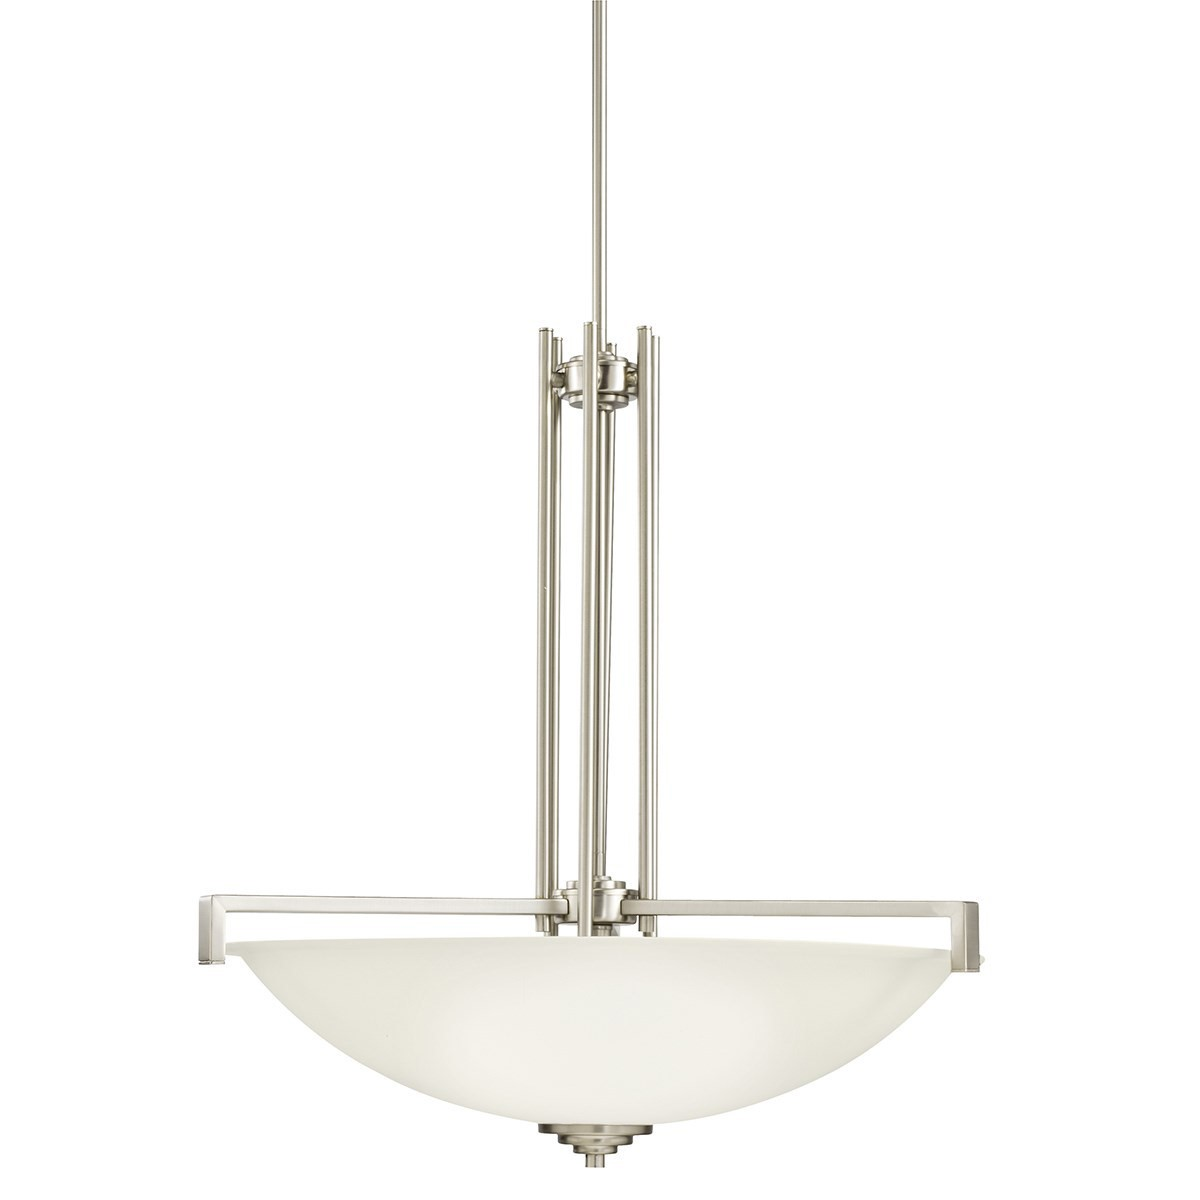 Kichler Eileen Eileen LED Four-Light Pendant Light with Satin Etched White Steel Shade - Brushed Nickel (3299NIL18)